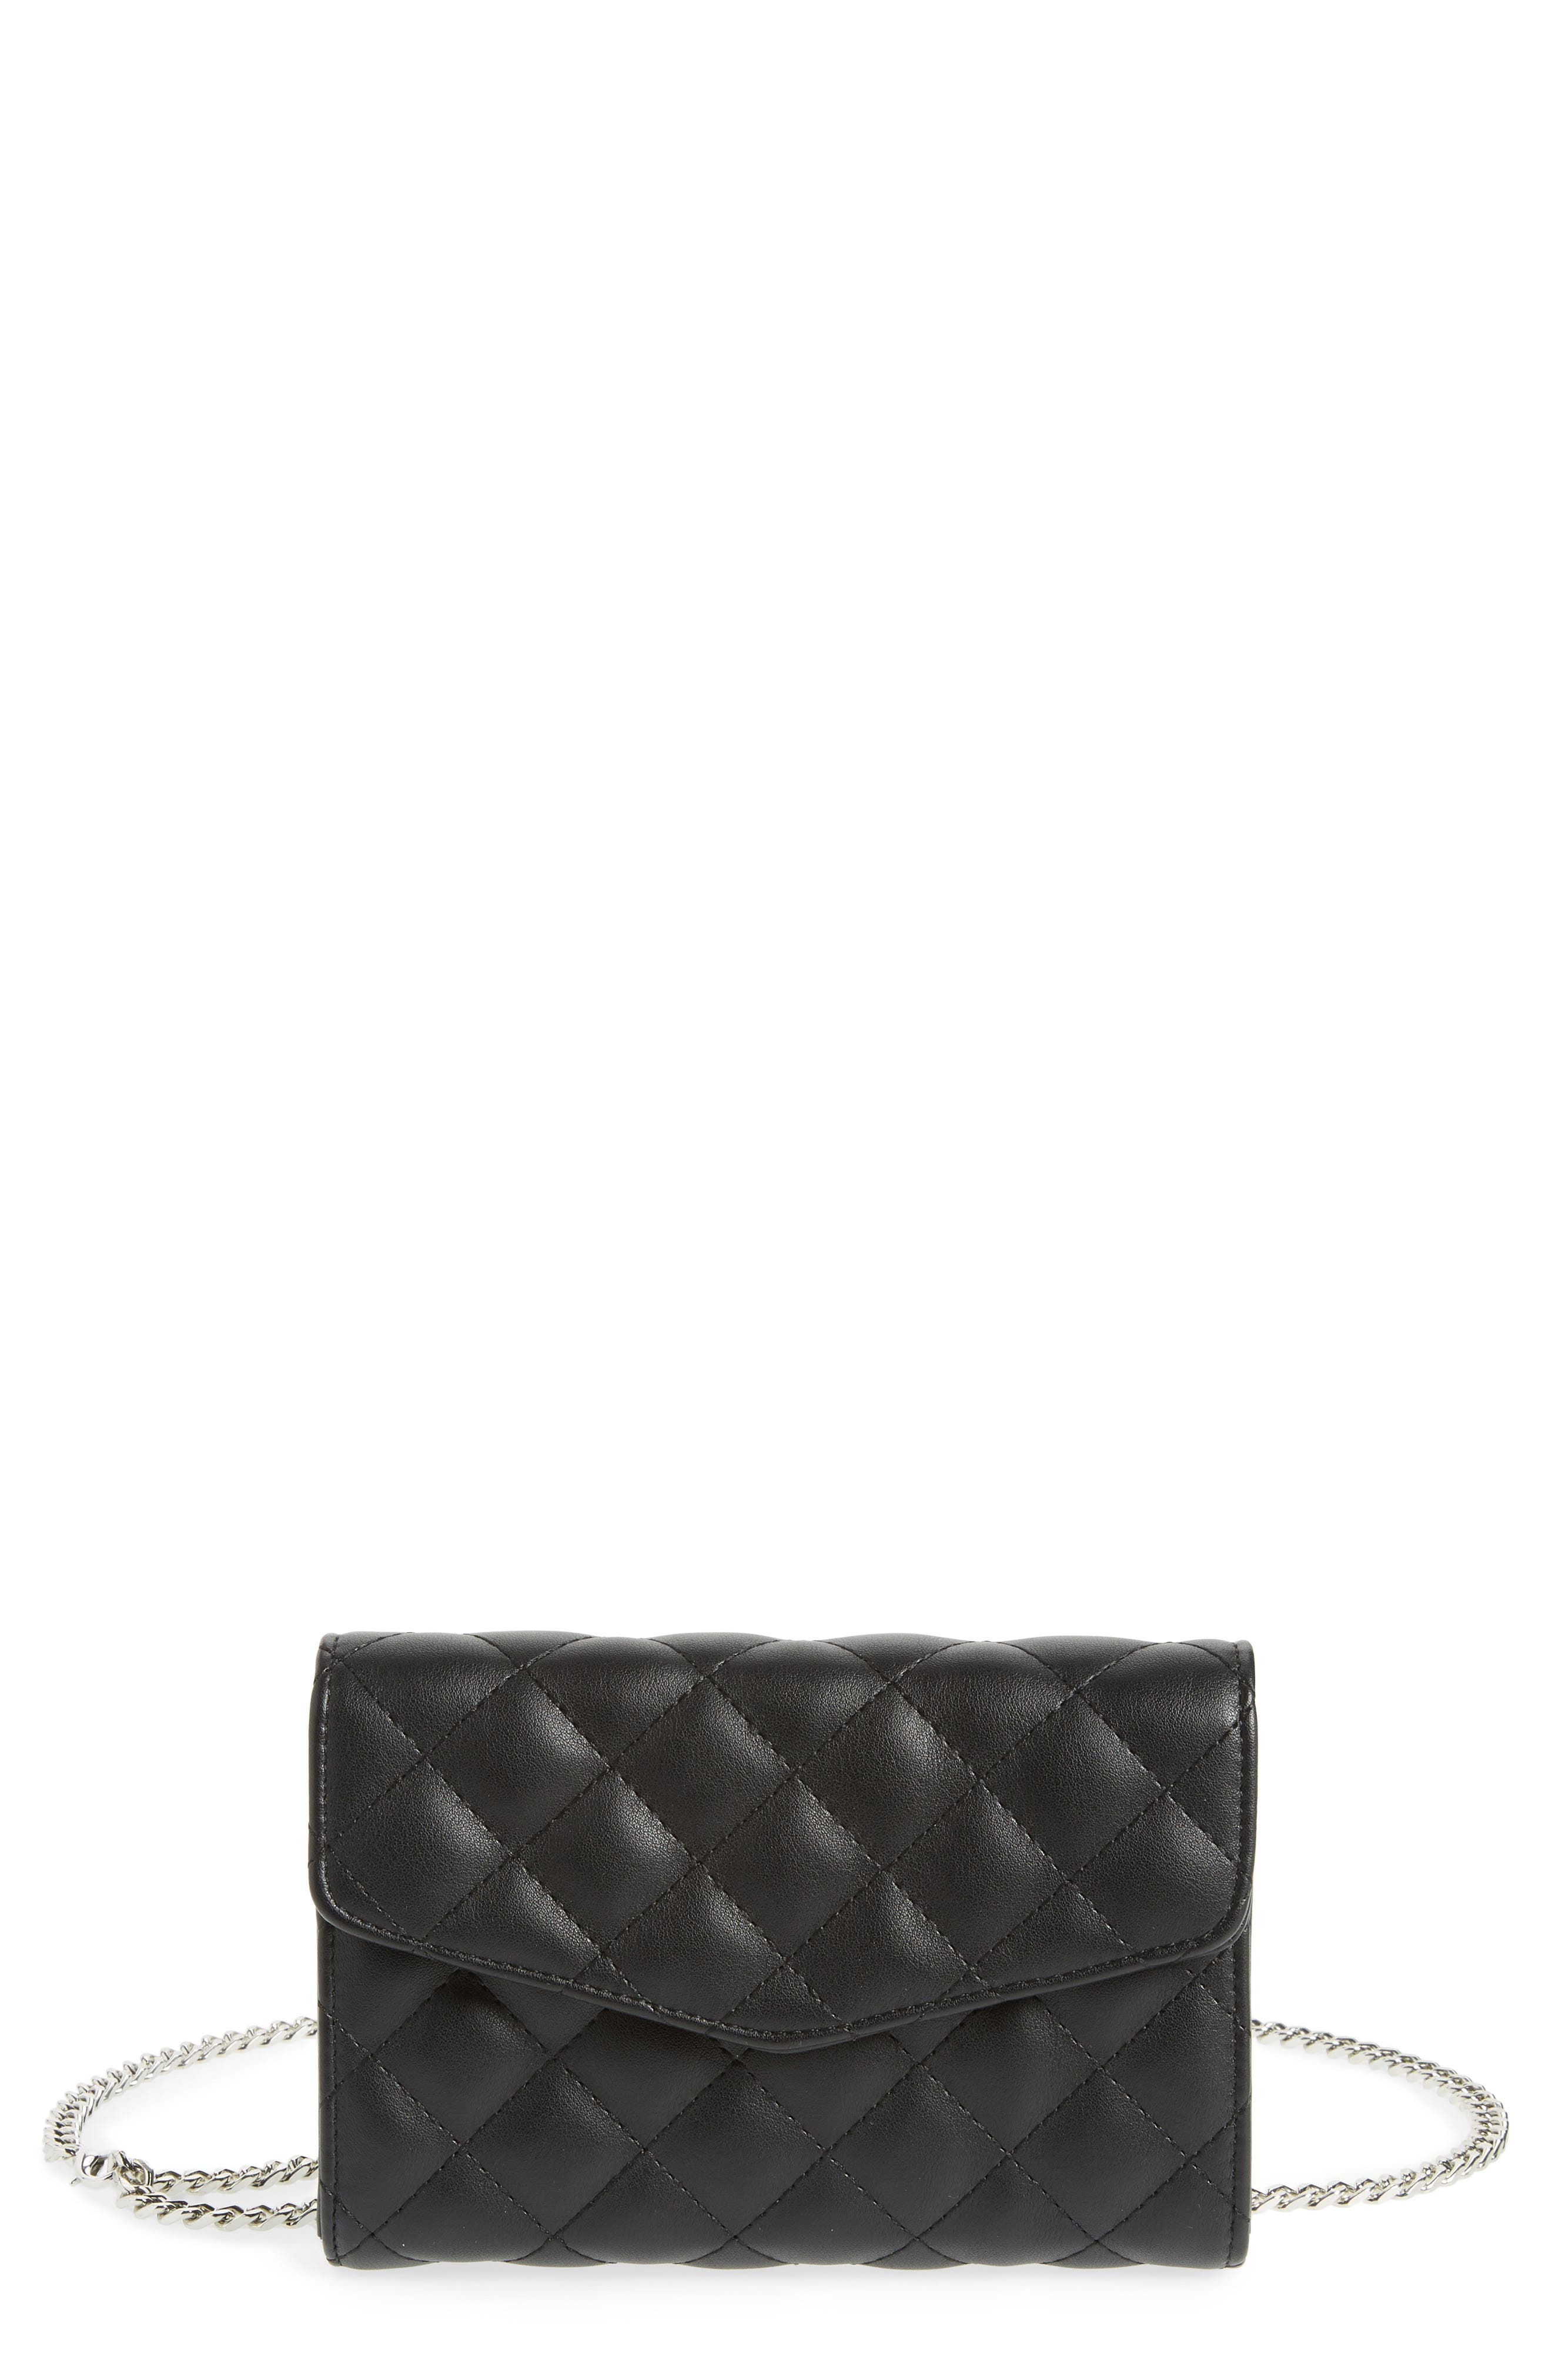 Street Level Quilted Bag with Crossbody Strap